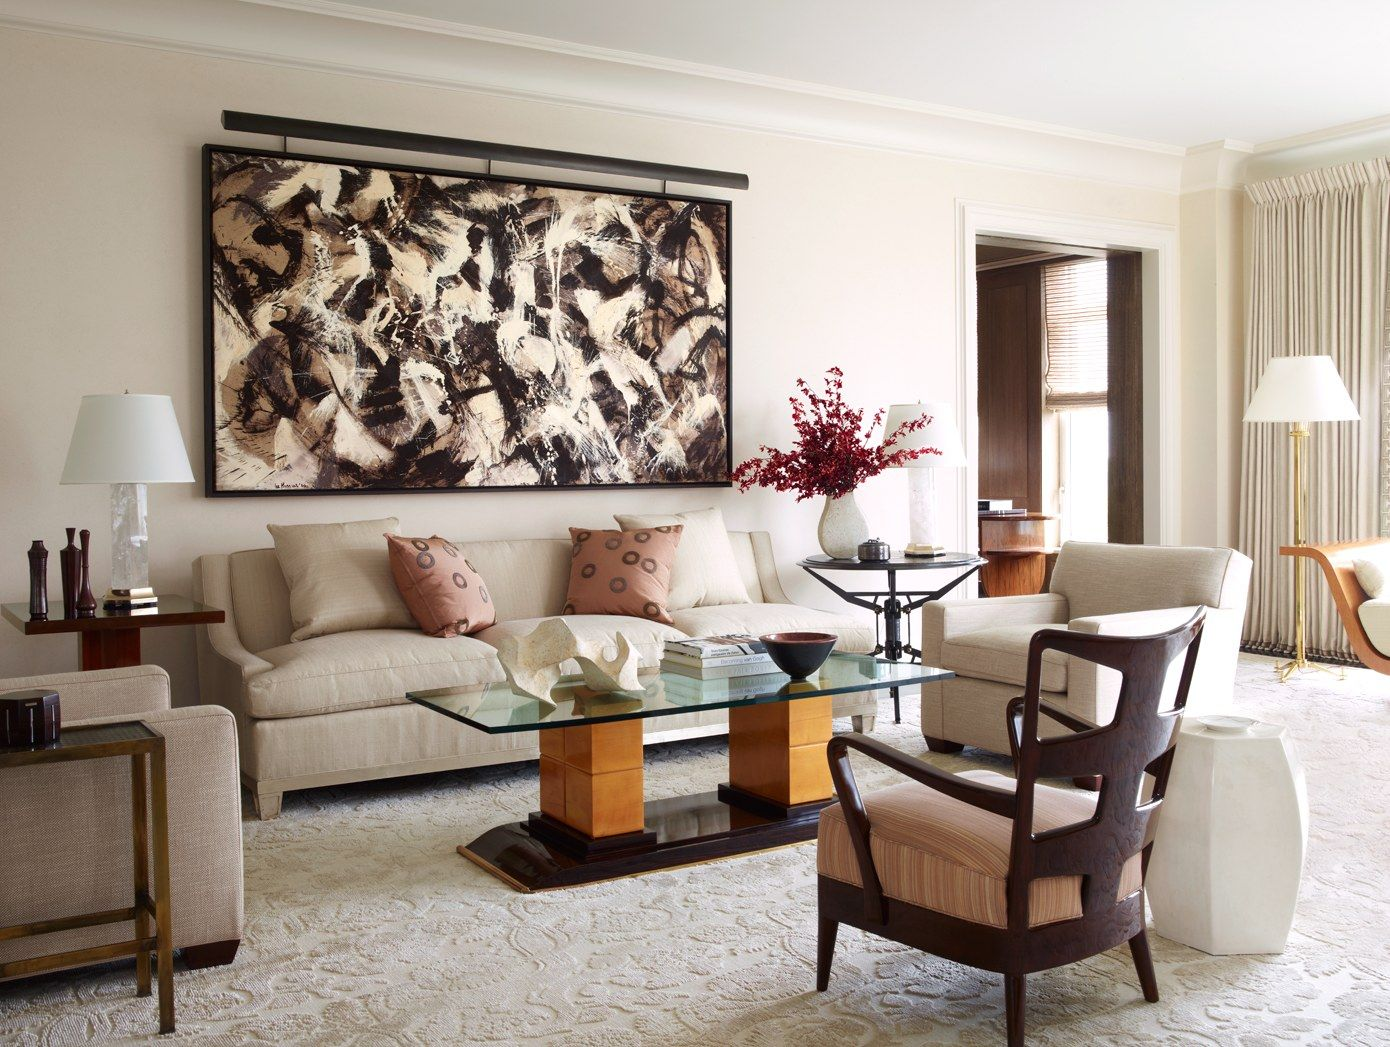 A New York City Apartment Made Over by David Kleinberg